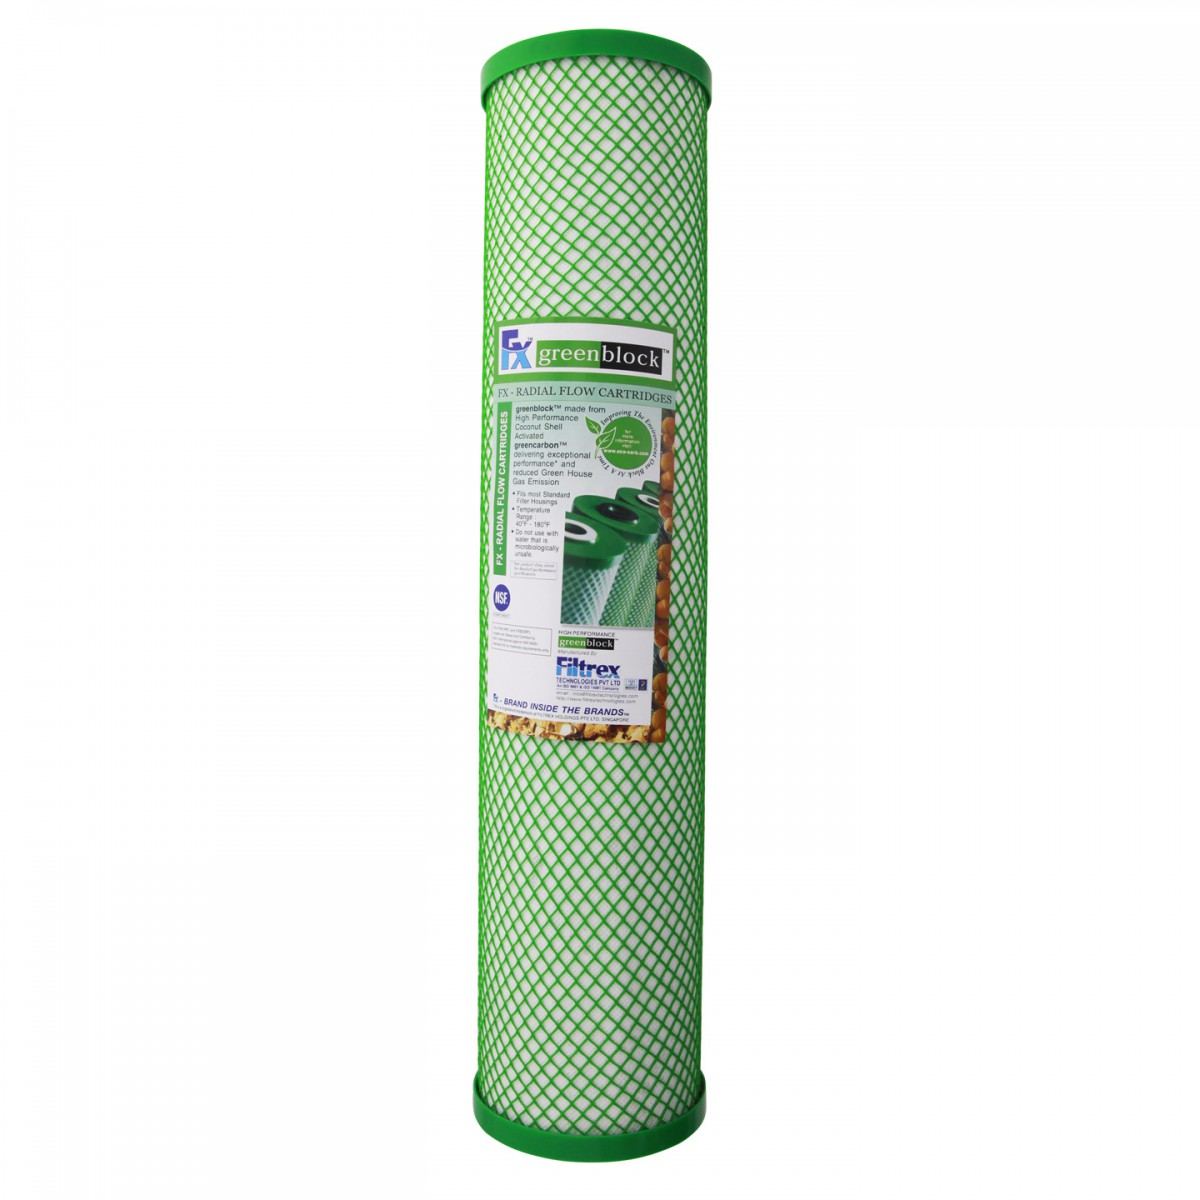 Pool Sandfilterpumpe Pure Eco Fxb20rfl Filtrex Eco Friendly Water Filters